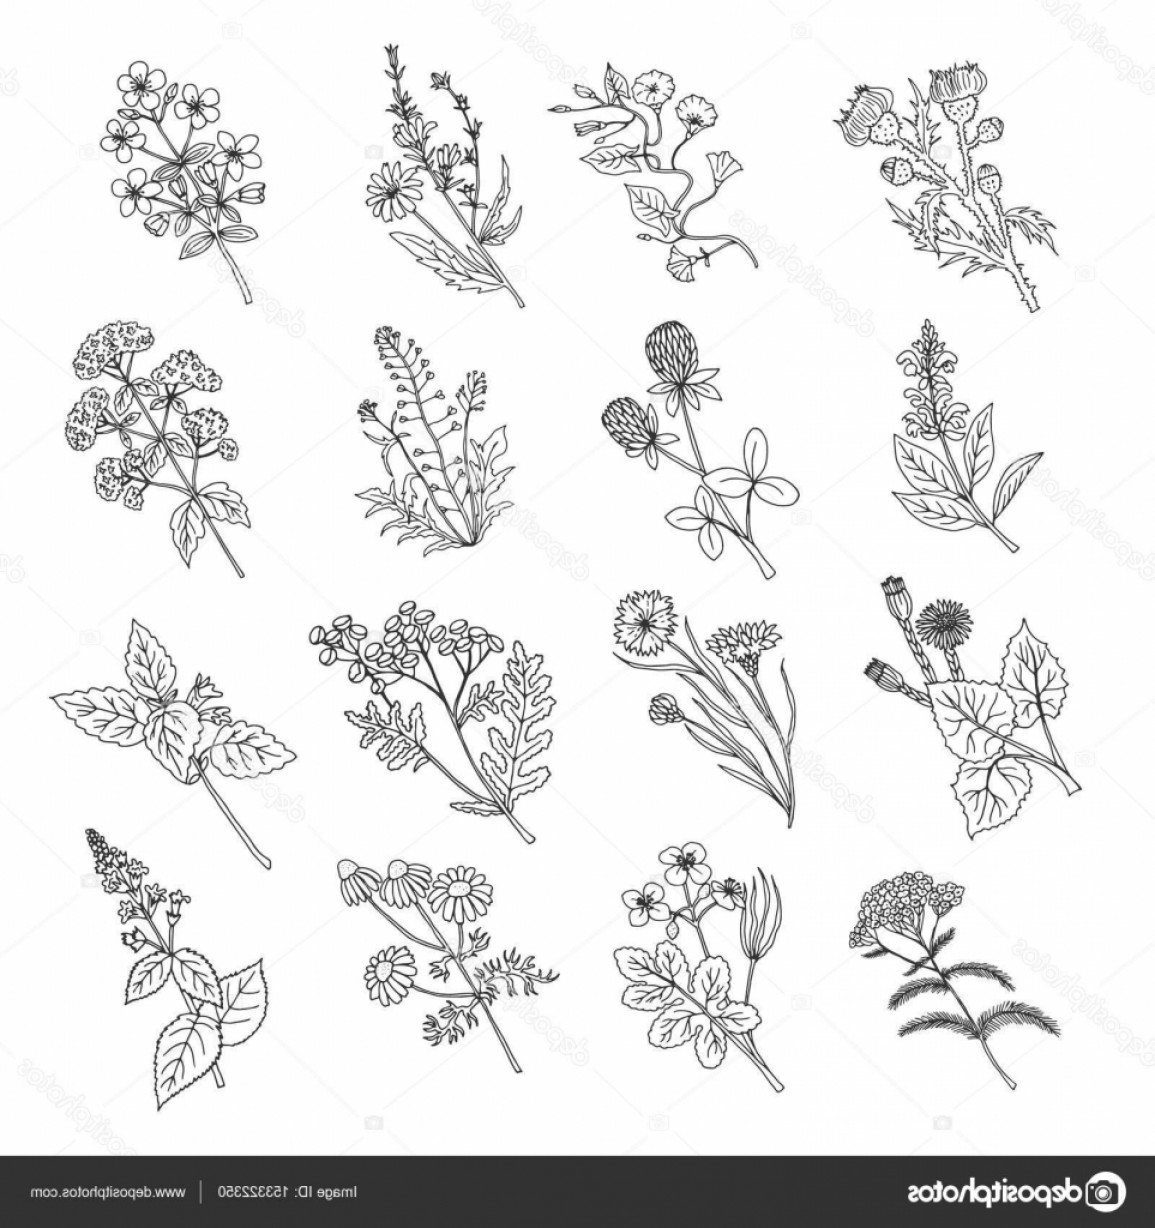 Botanical Flower Vectors: Stock Illustration Botanical Sketch Drawings Vector Illustration